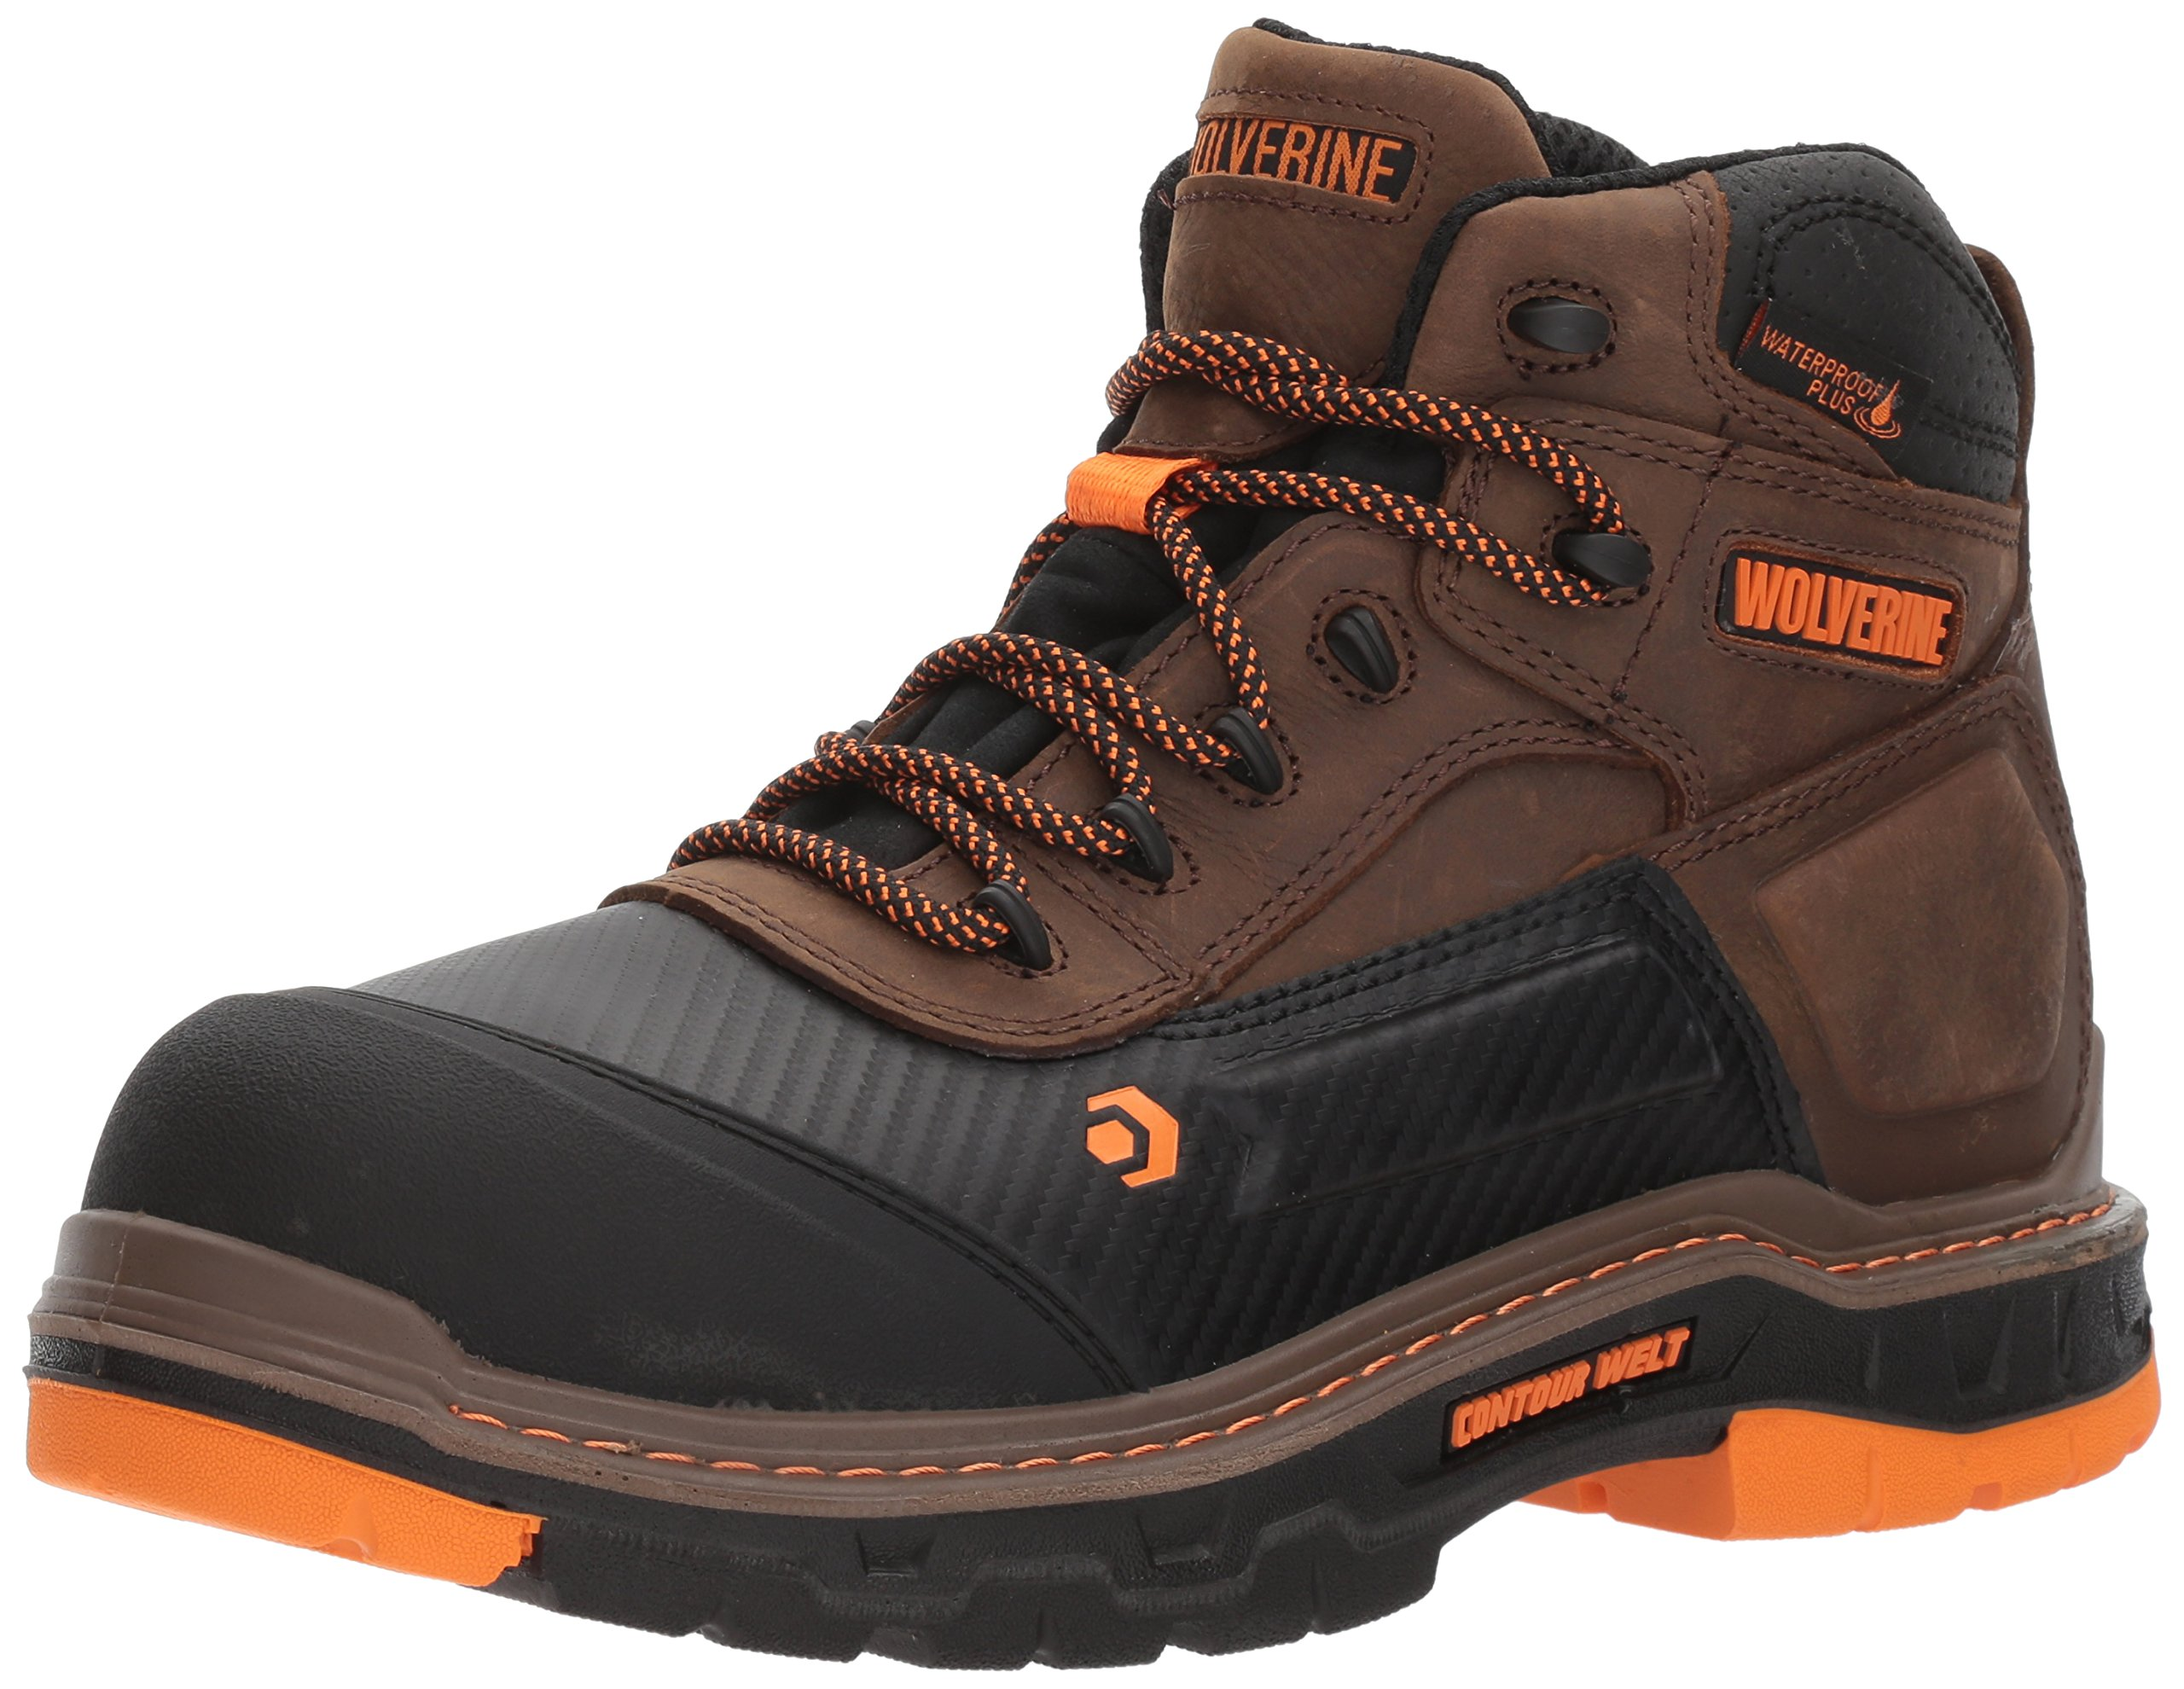 Wolverine Men's Overpass 6'' Composite Toe Waterproof Work Boot, Summer Brown, 9 M US by Wolverine